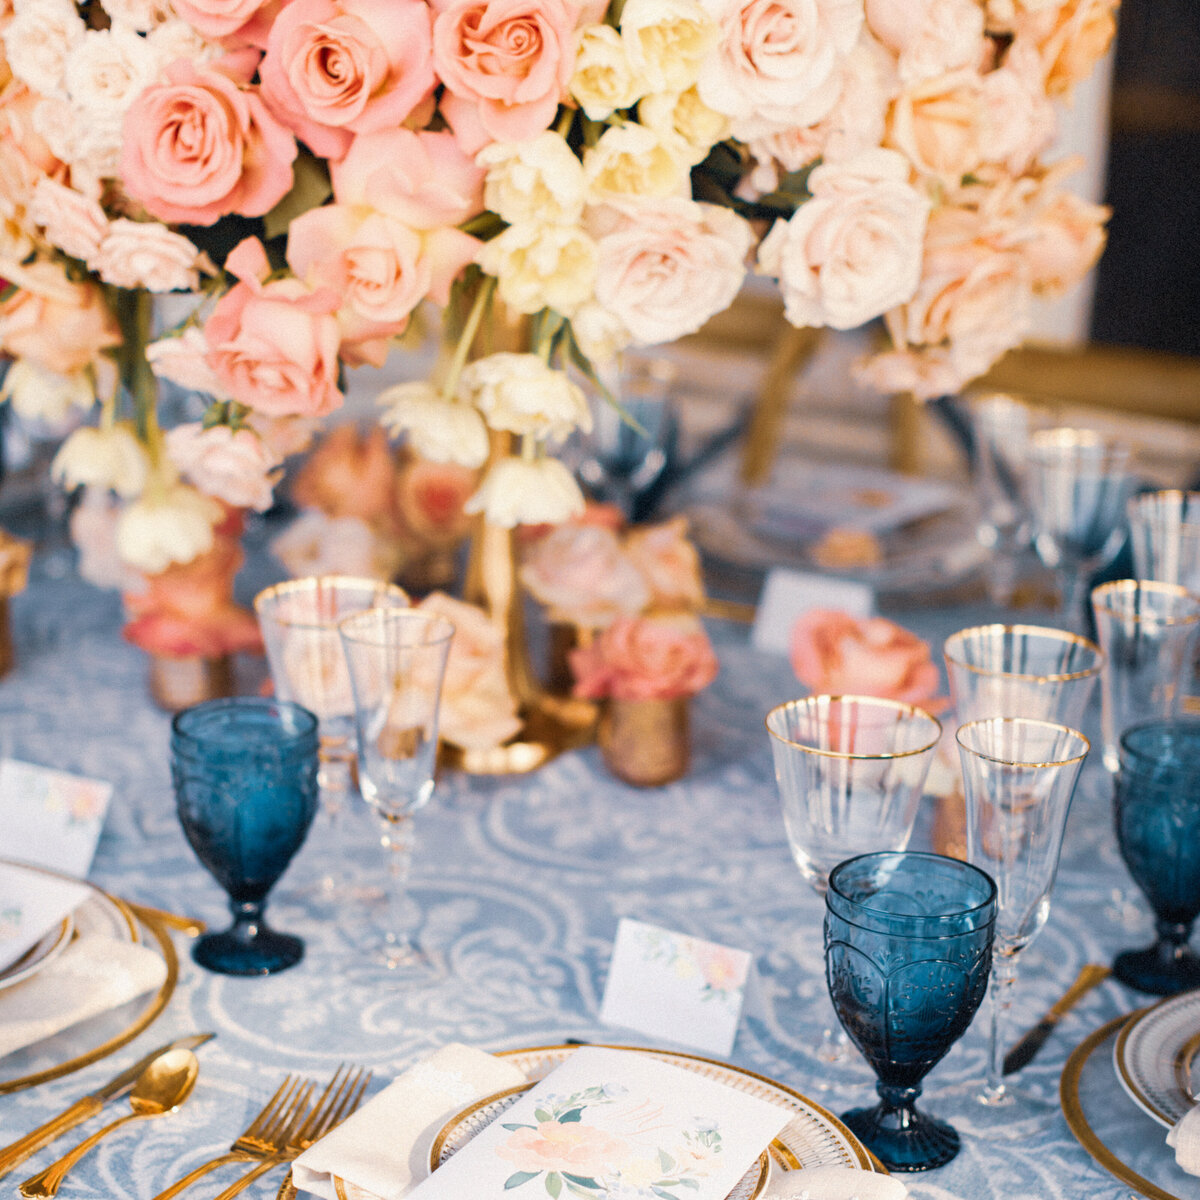 roses-glasses-table-wedding